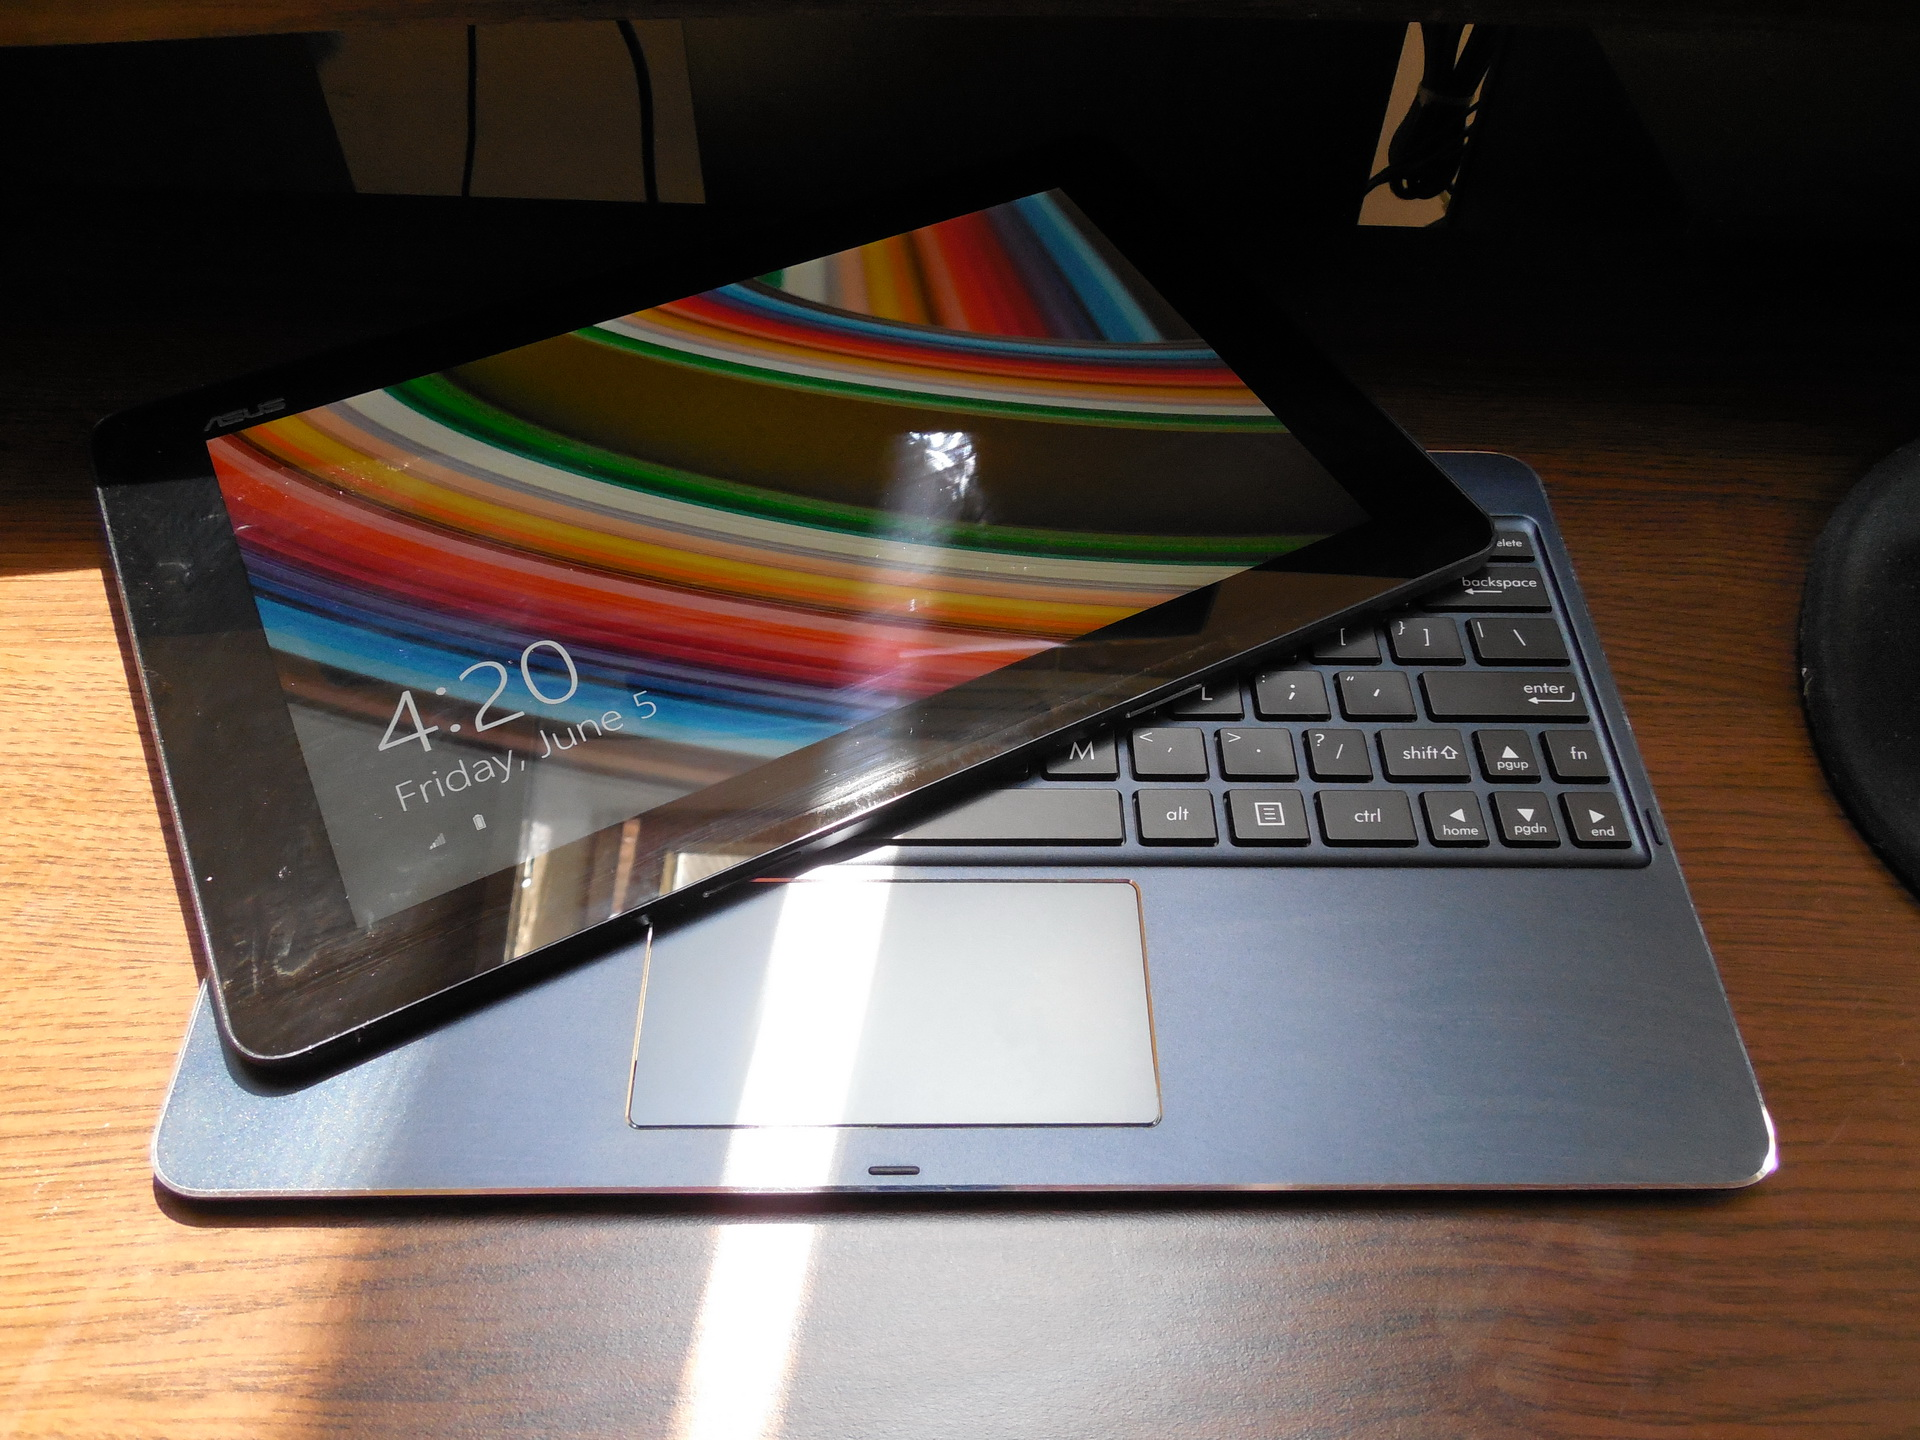 Asus transformer book t100 chi review better laptop replacement than android or ios slates - Asus transformer t100 ports ...